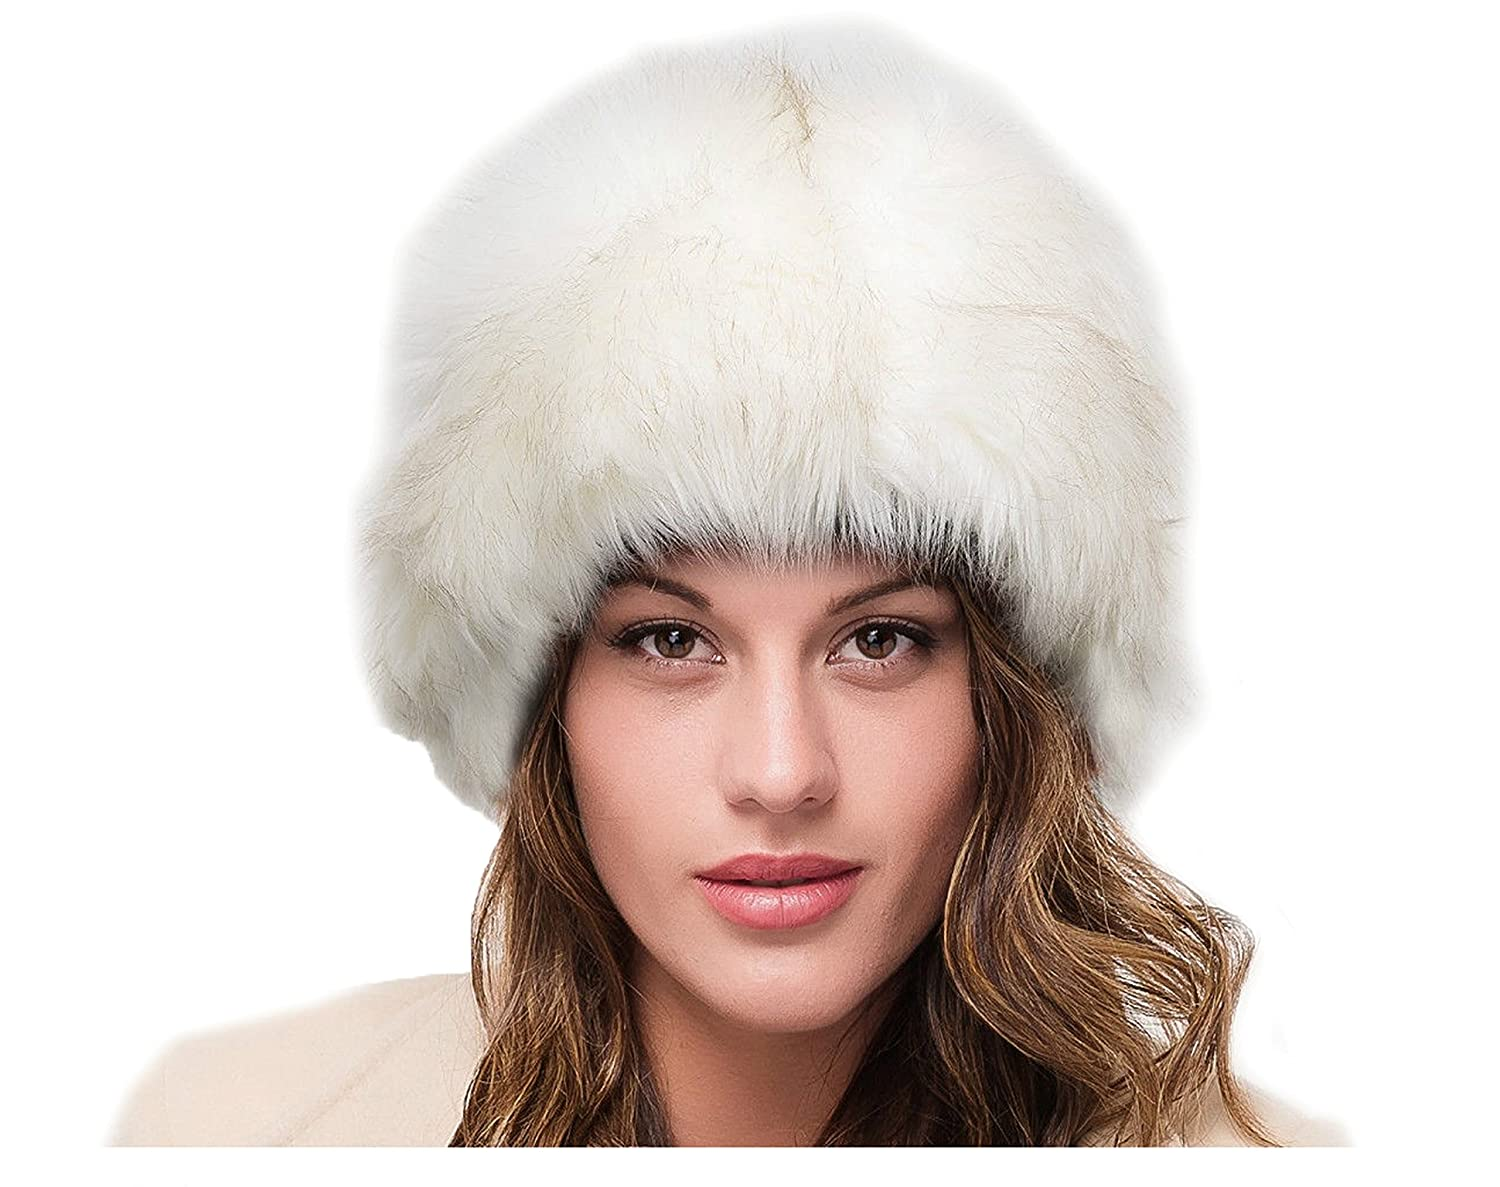 LADIES SUPERB QUALITY CREAM FAUX FUR WINTER RUSSIAN COSSACK CLOCHE STYLE HAT   Amazon.co.uk  Clothing 5de5f0f6852